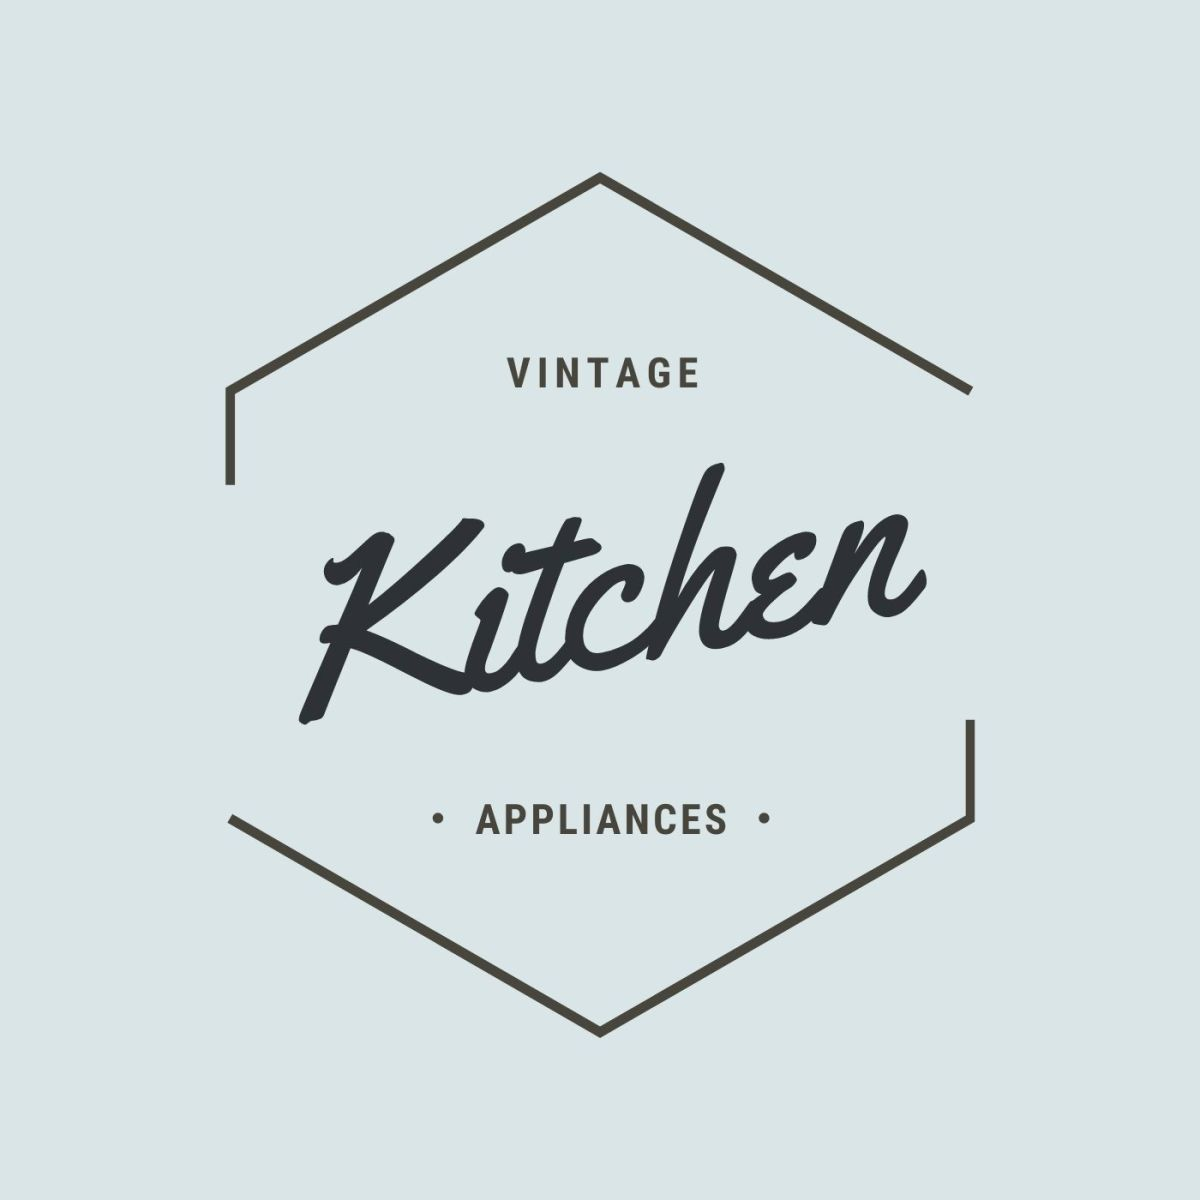 These kitchen appliances might be old school but are pretty neat.